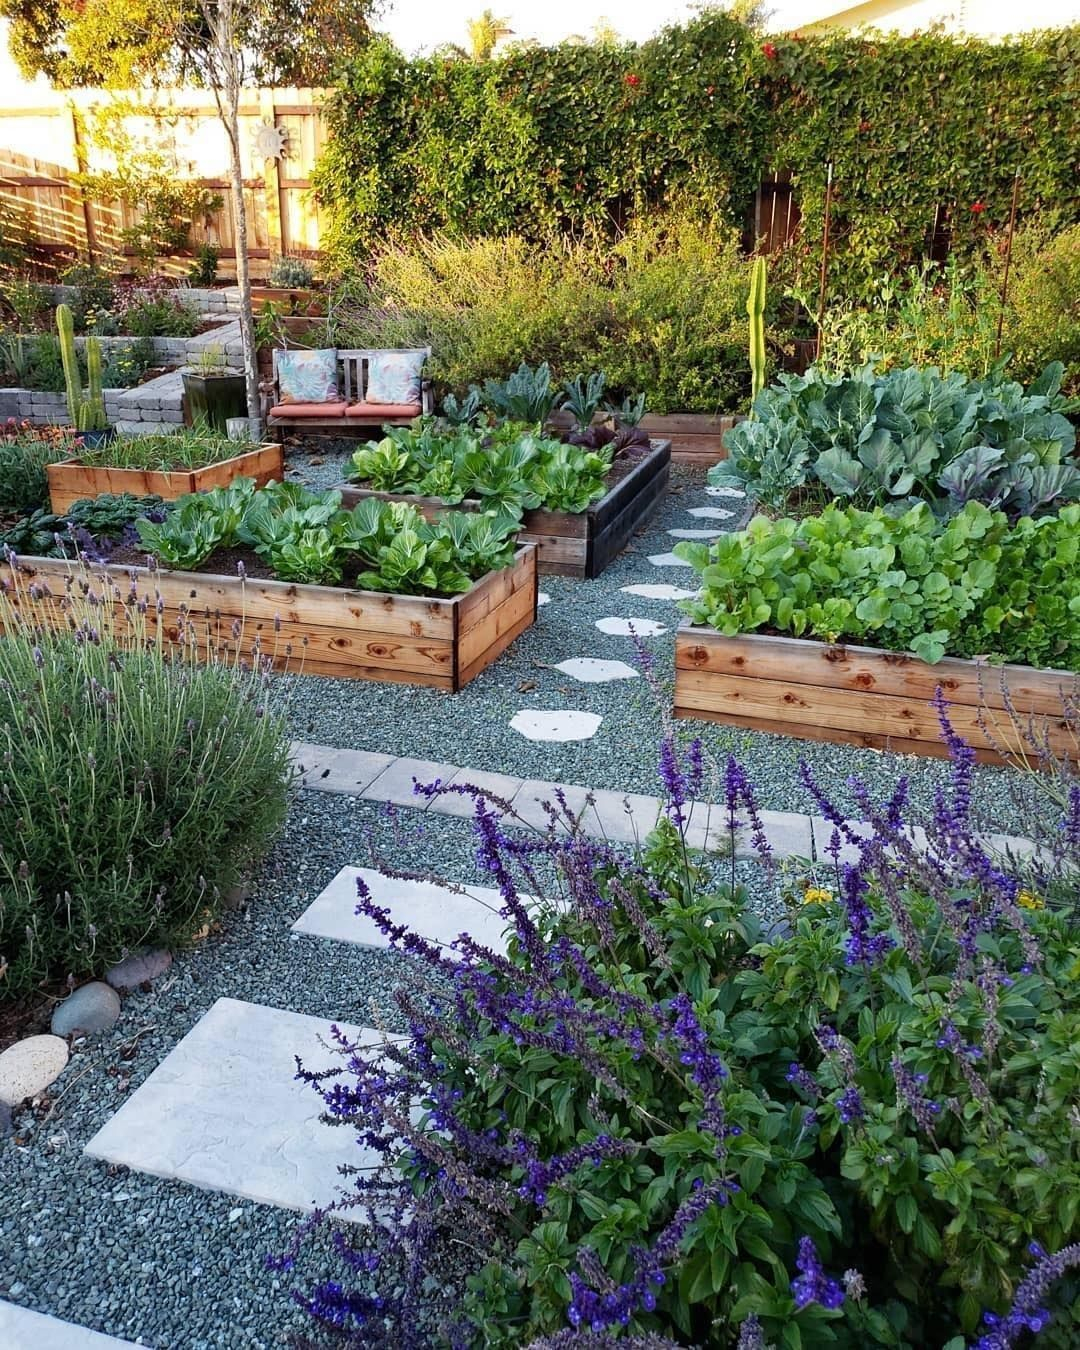 Brilliant Gardening Design Ideas You Need To Know In 202002